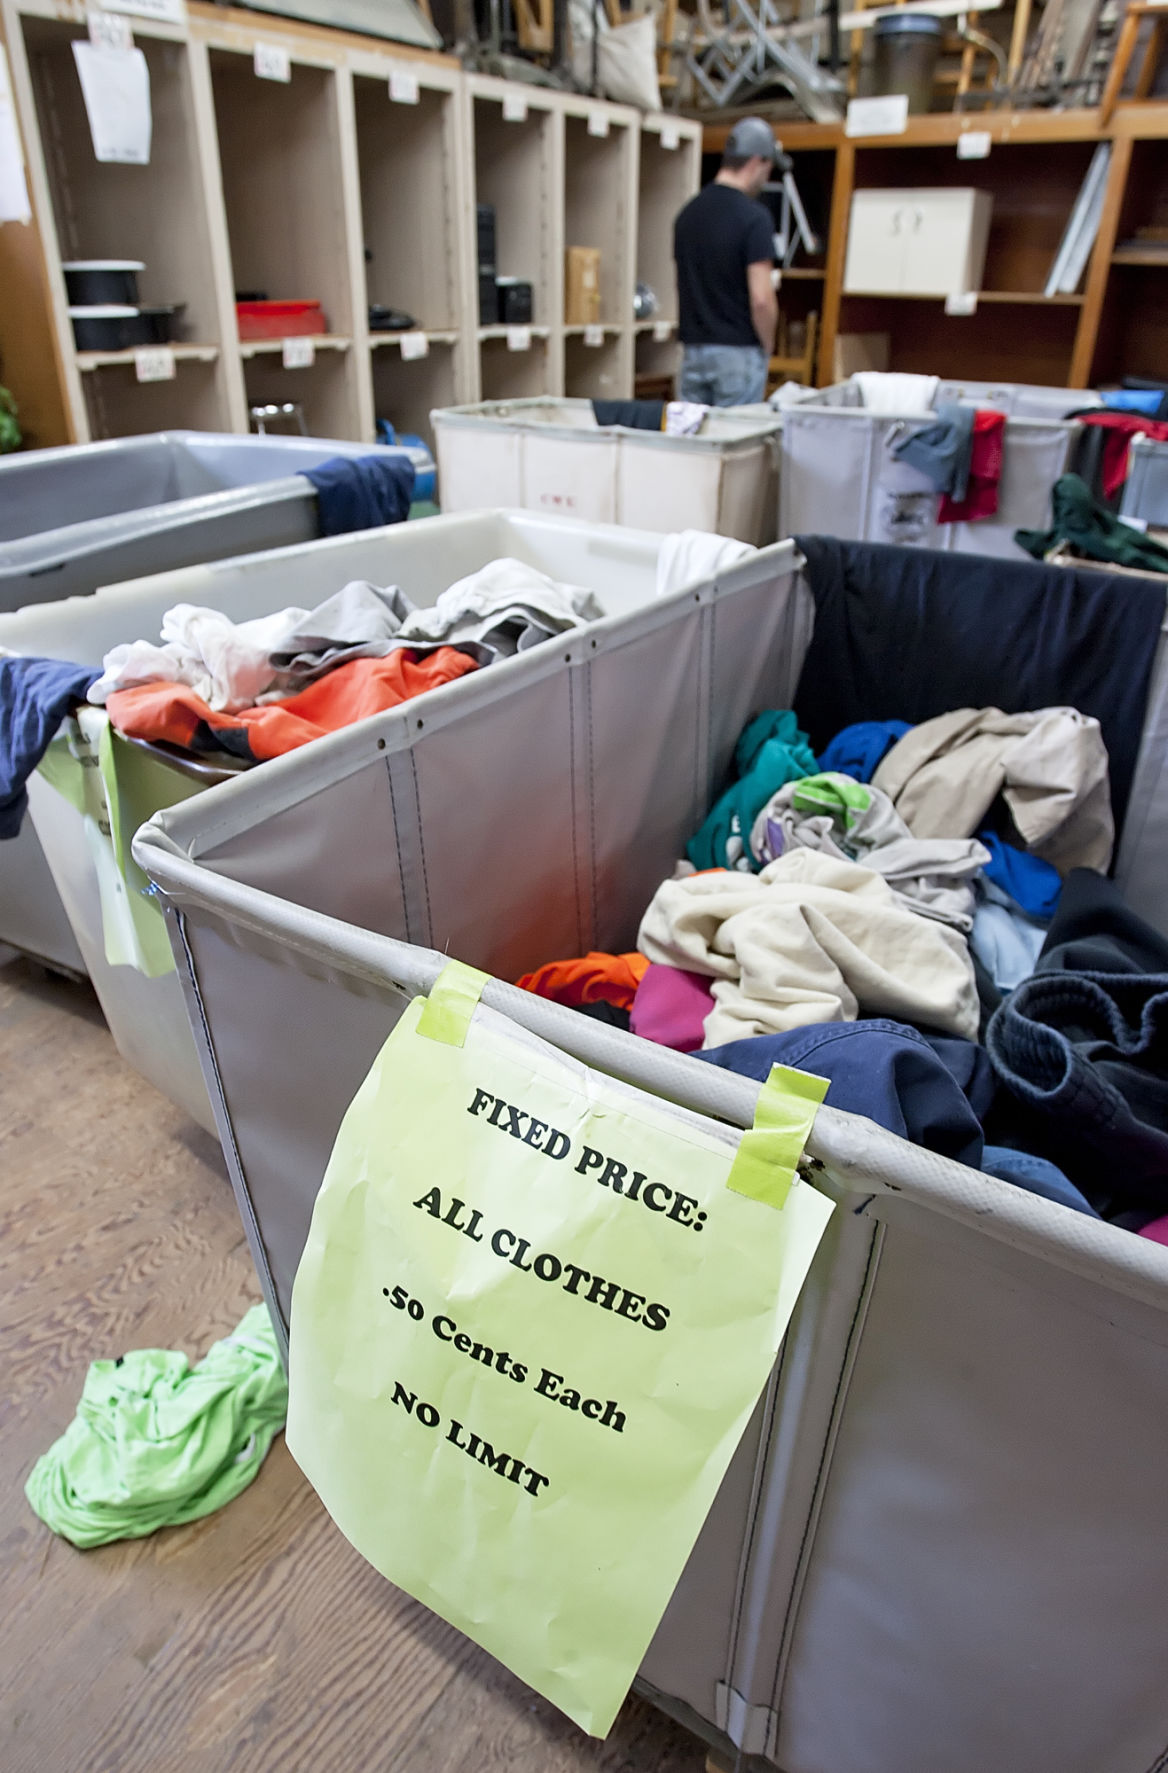 CWU surplus sales are a treasure trove of deals and history